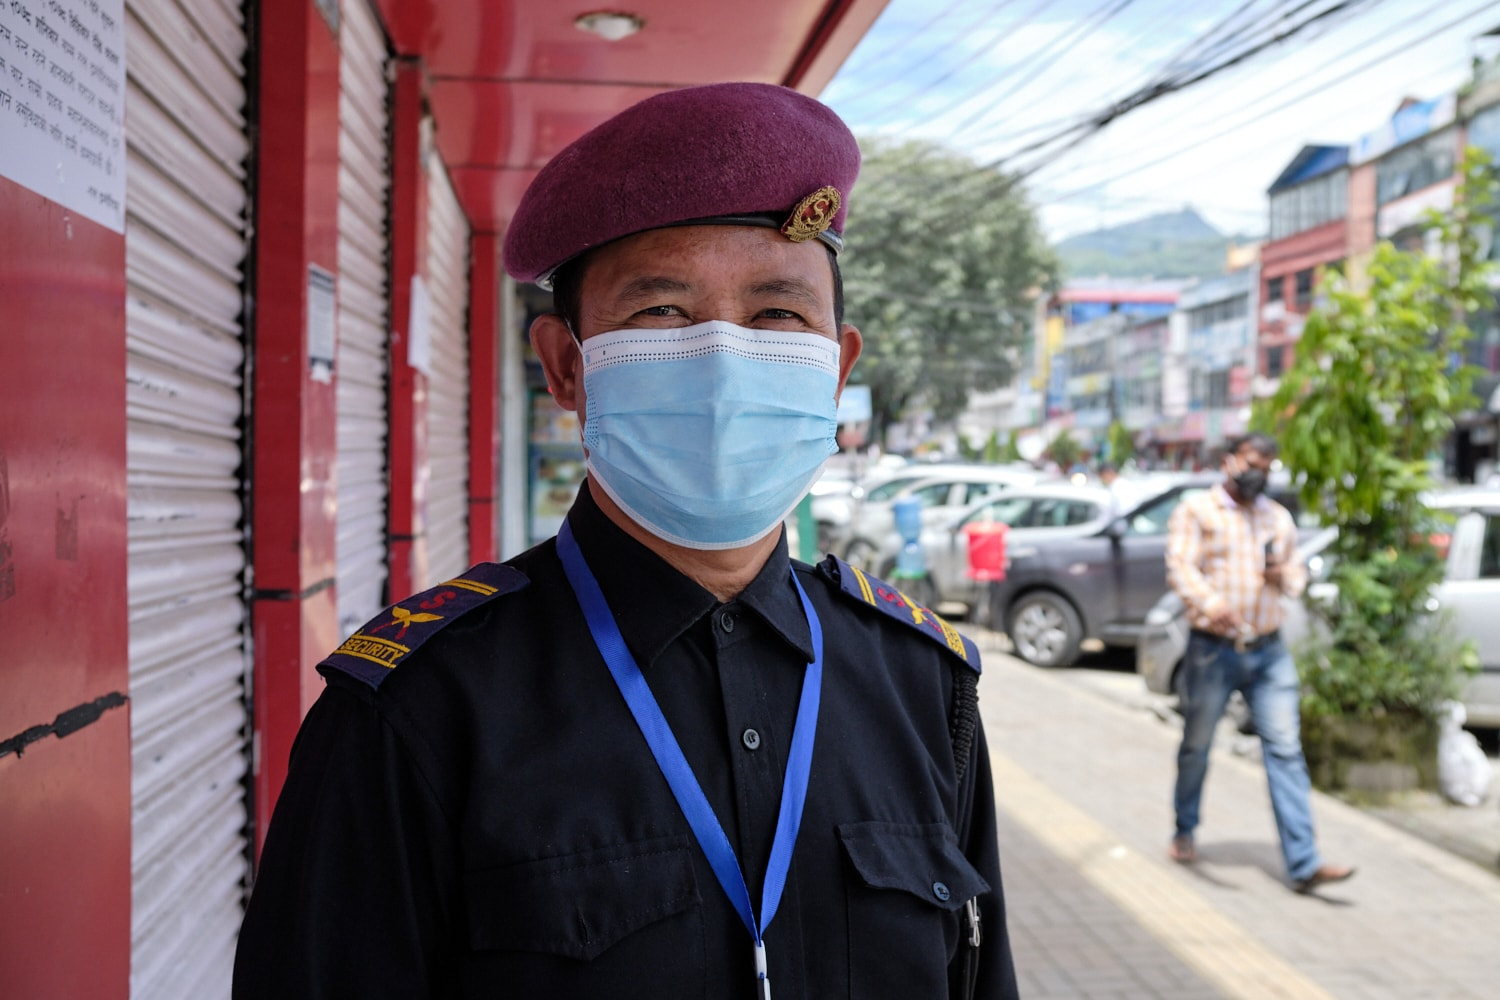 A security guard poses for a picture outside a closed shop in Pokhara.